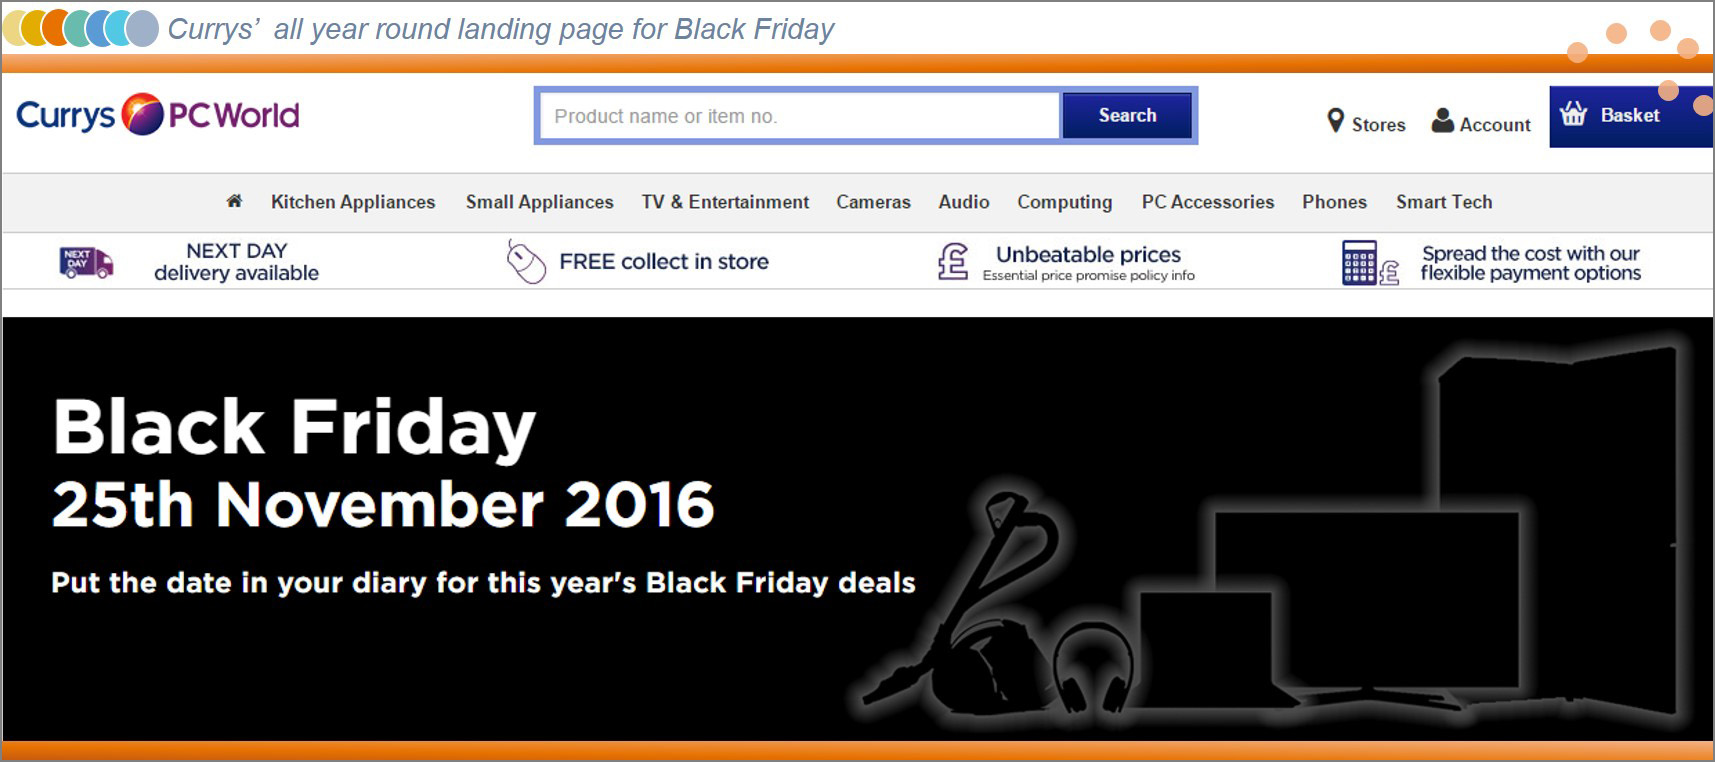 black-friday-marketing-practices.jpg